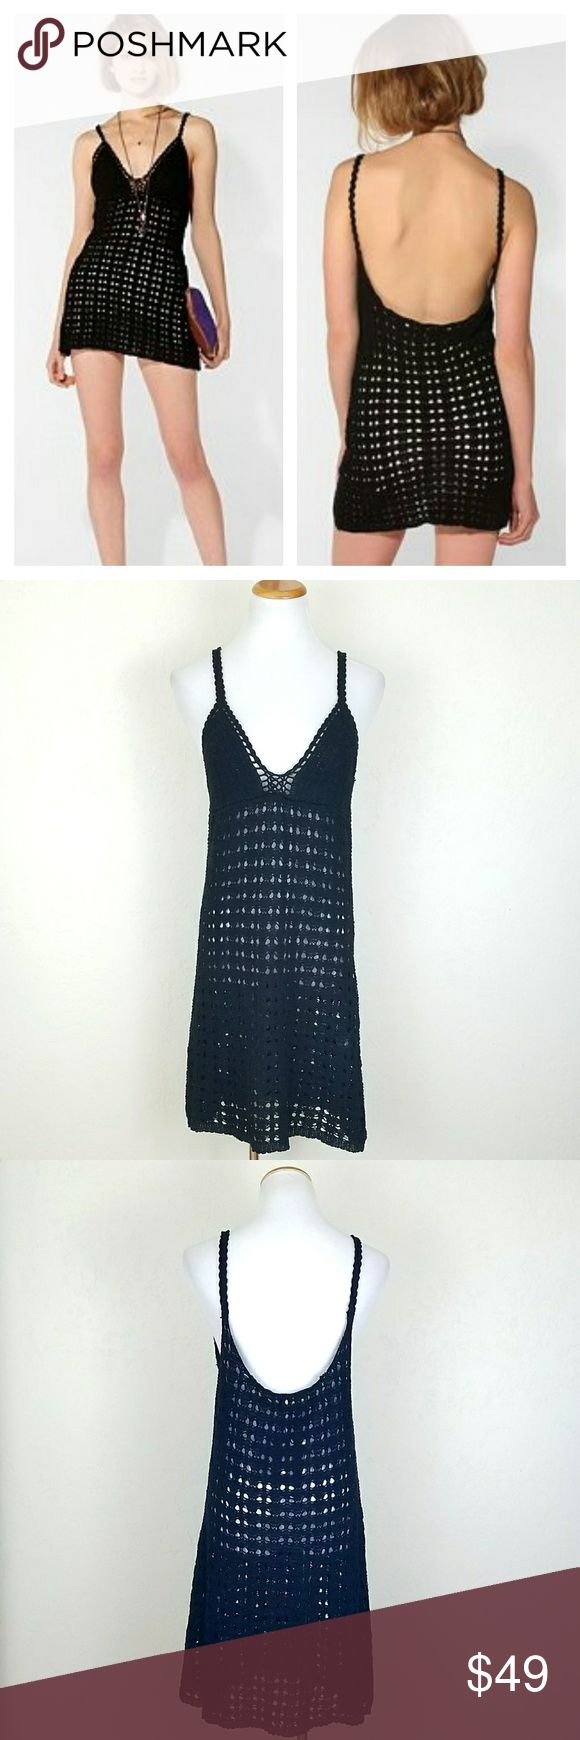 Black Crochet Festival Dress / Swim Cover We All Shine by Minkpink Urban Outfitters Exculsive. Black crochet dress. Unlined. I bought to use as a swim cover, but never used. NWT.   Bust 17 Length  37  No trade or P.P. Offers Considered Bundle discounts Urban Outfitters Dresses Mini